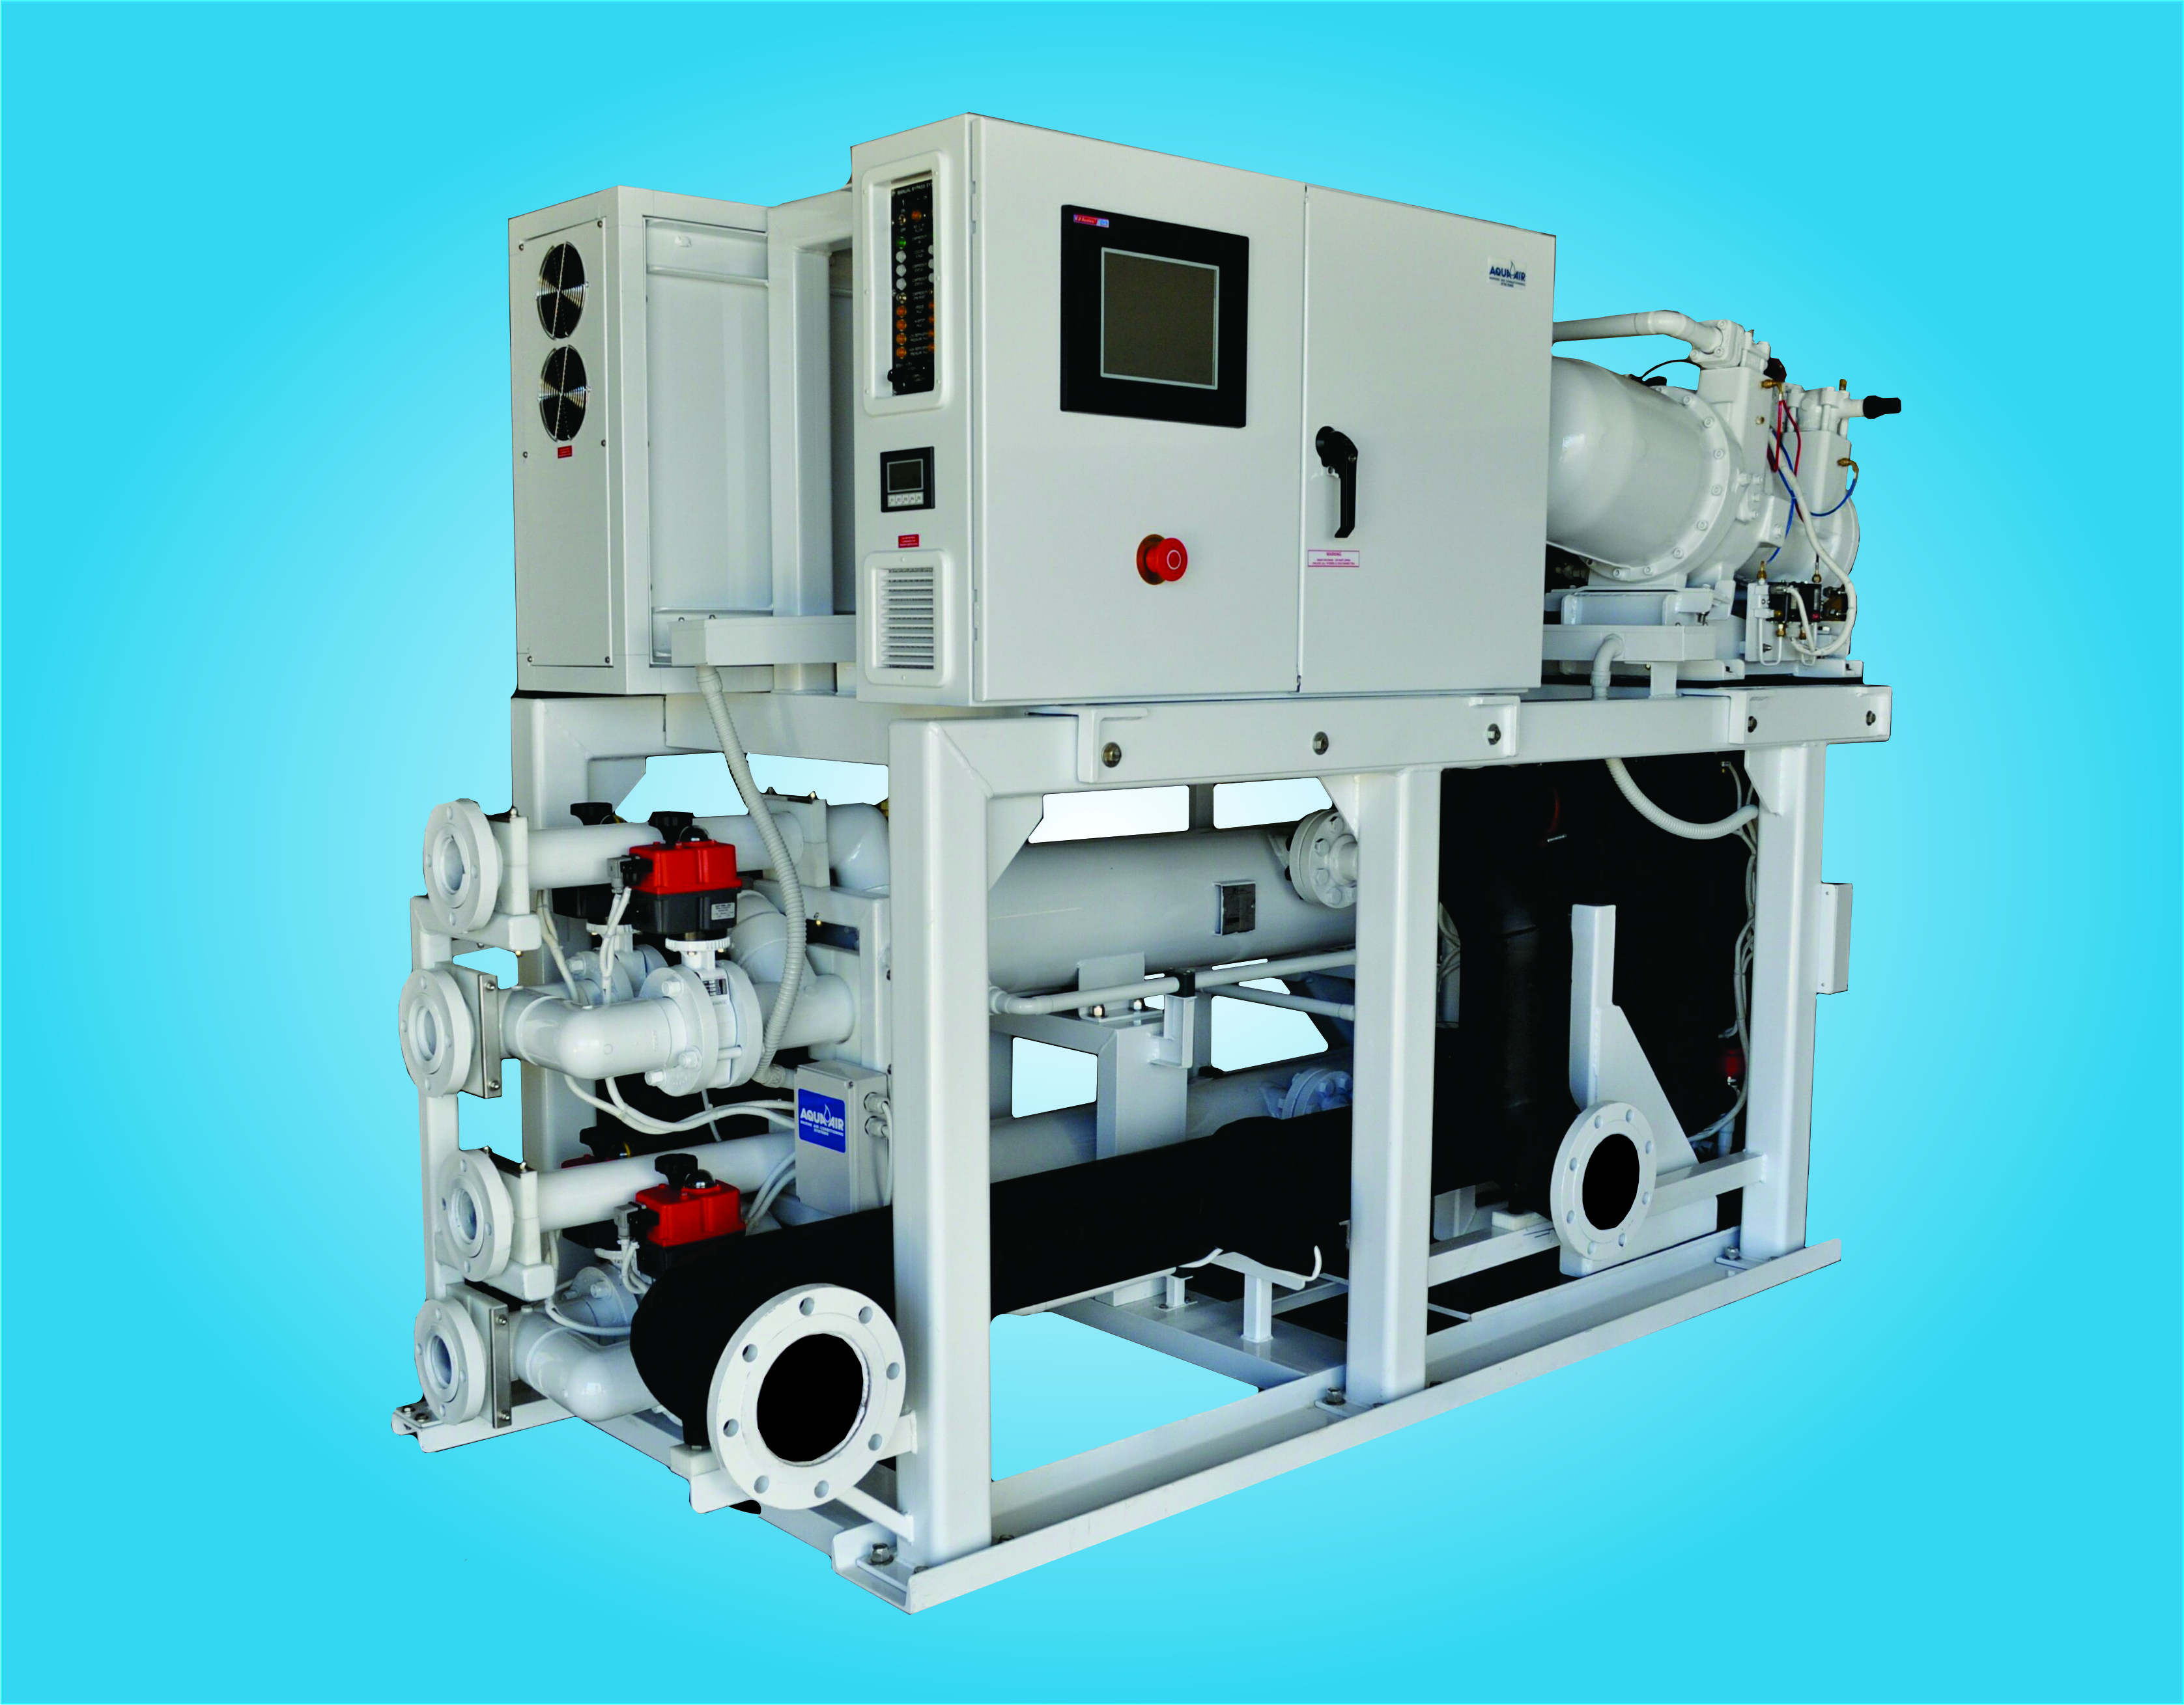 Aqua-Air Marine Air Conditioning Systems for Yachts of all Sizes